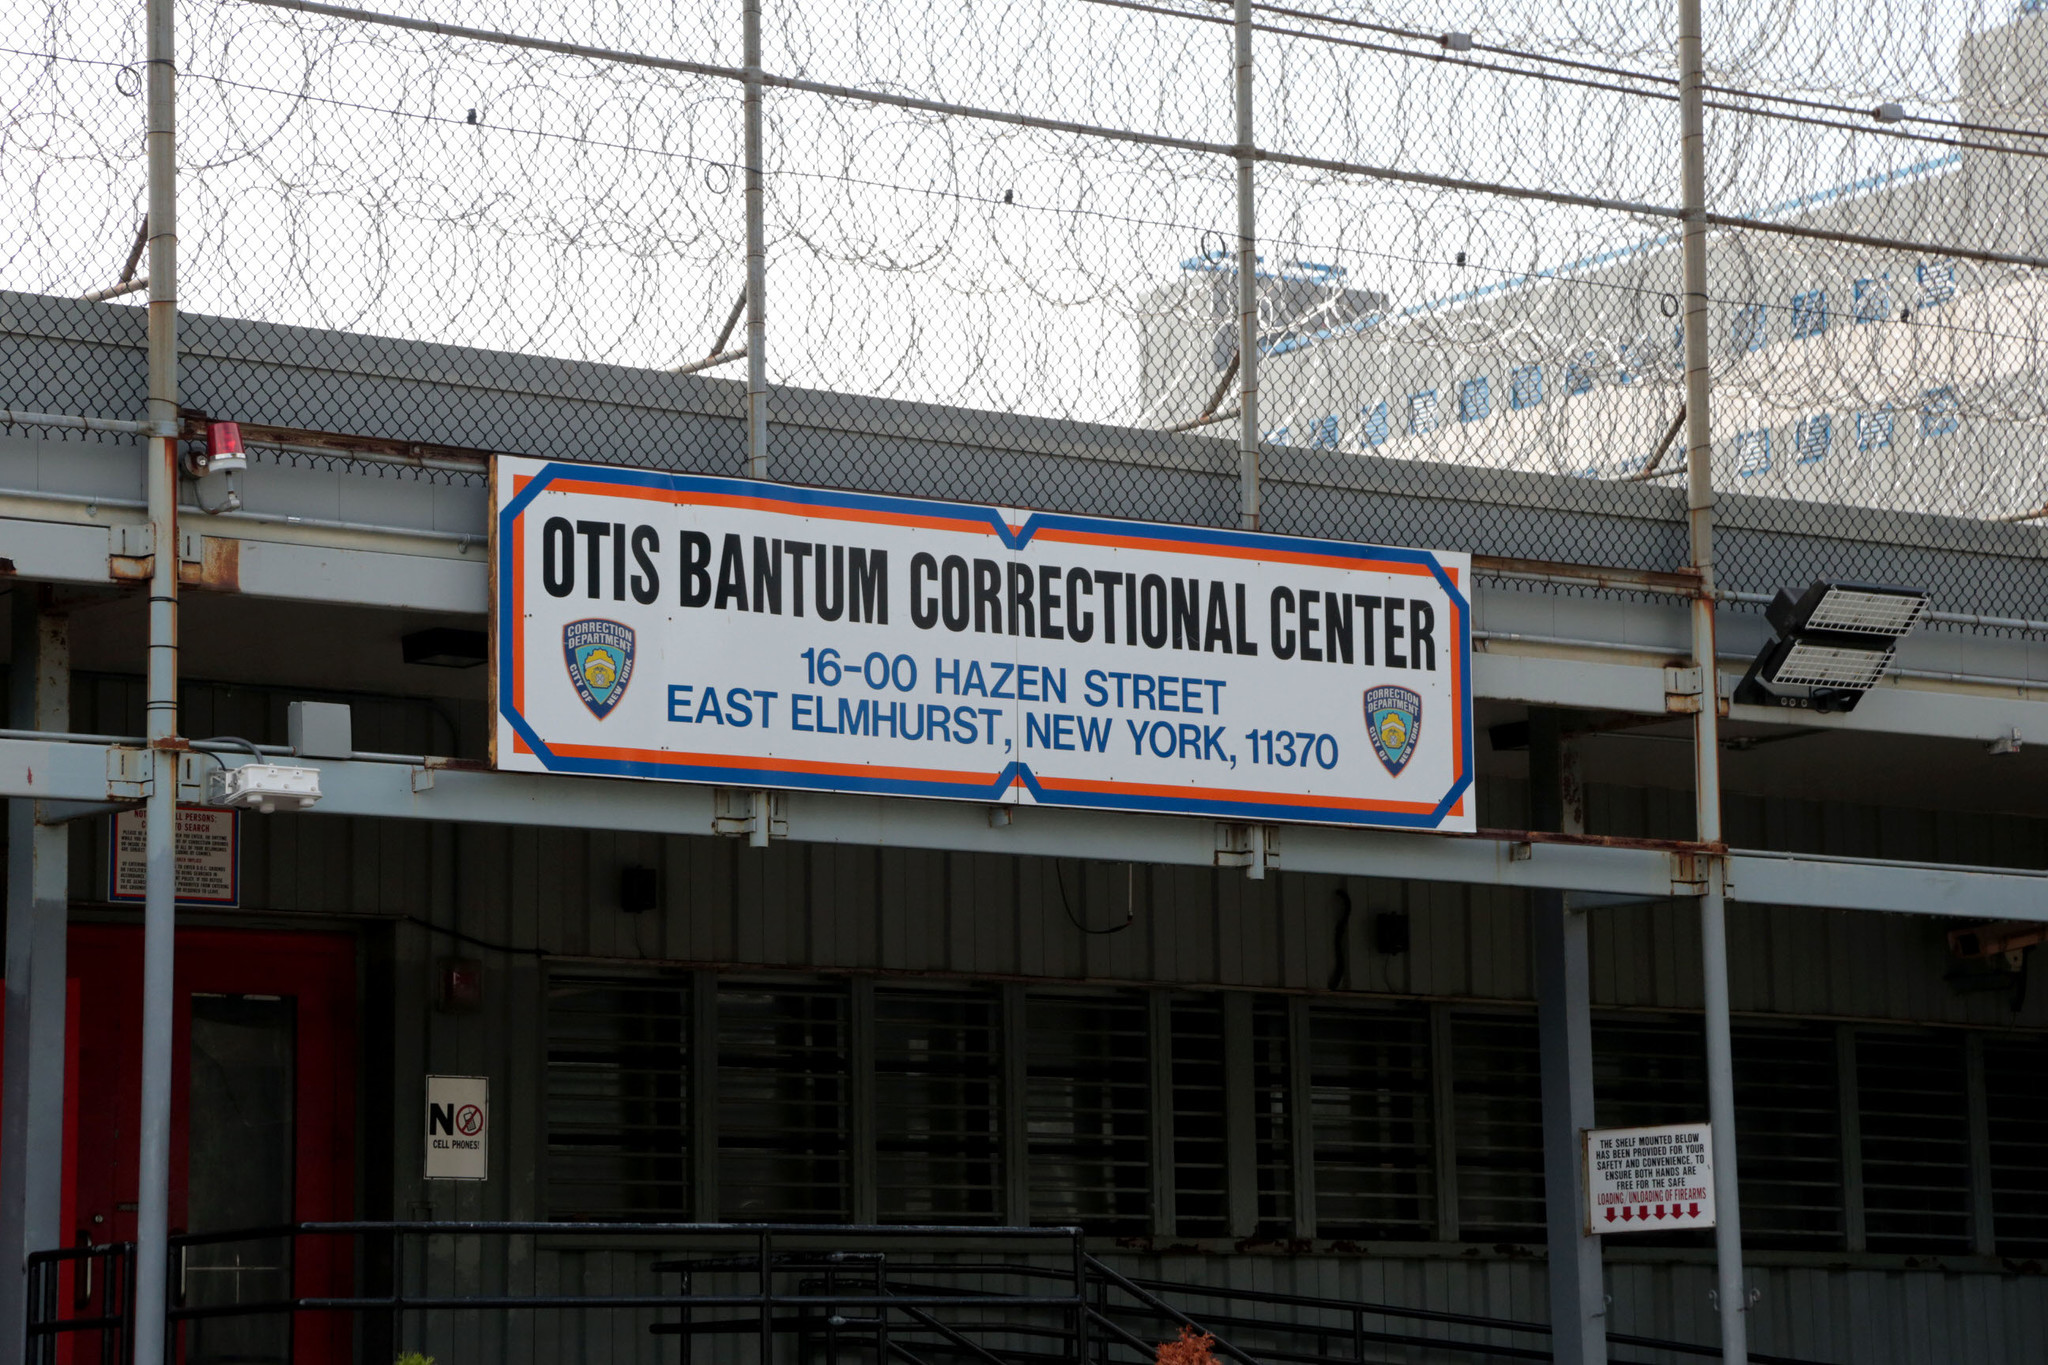 Curing our epidemic of incarceration: Learning to let more New Yorkers out of prison, during and after the coronavirus crisis